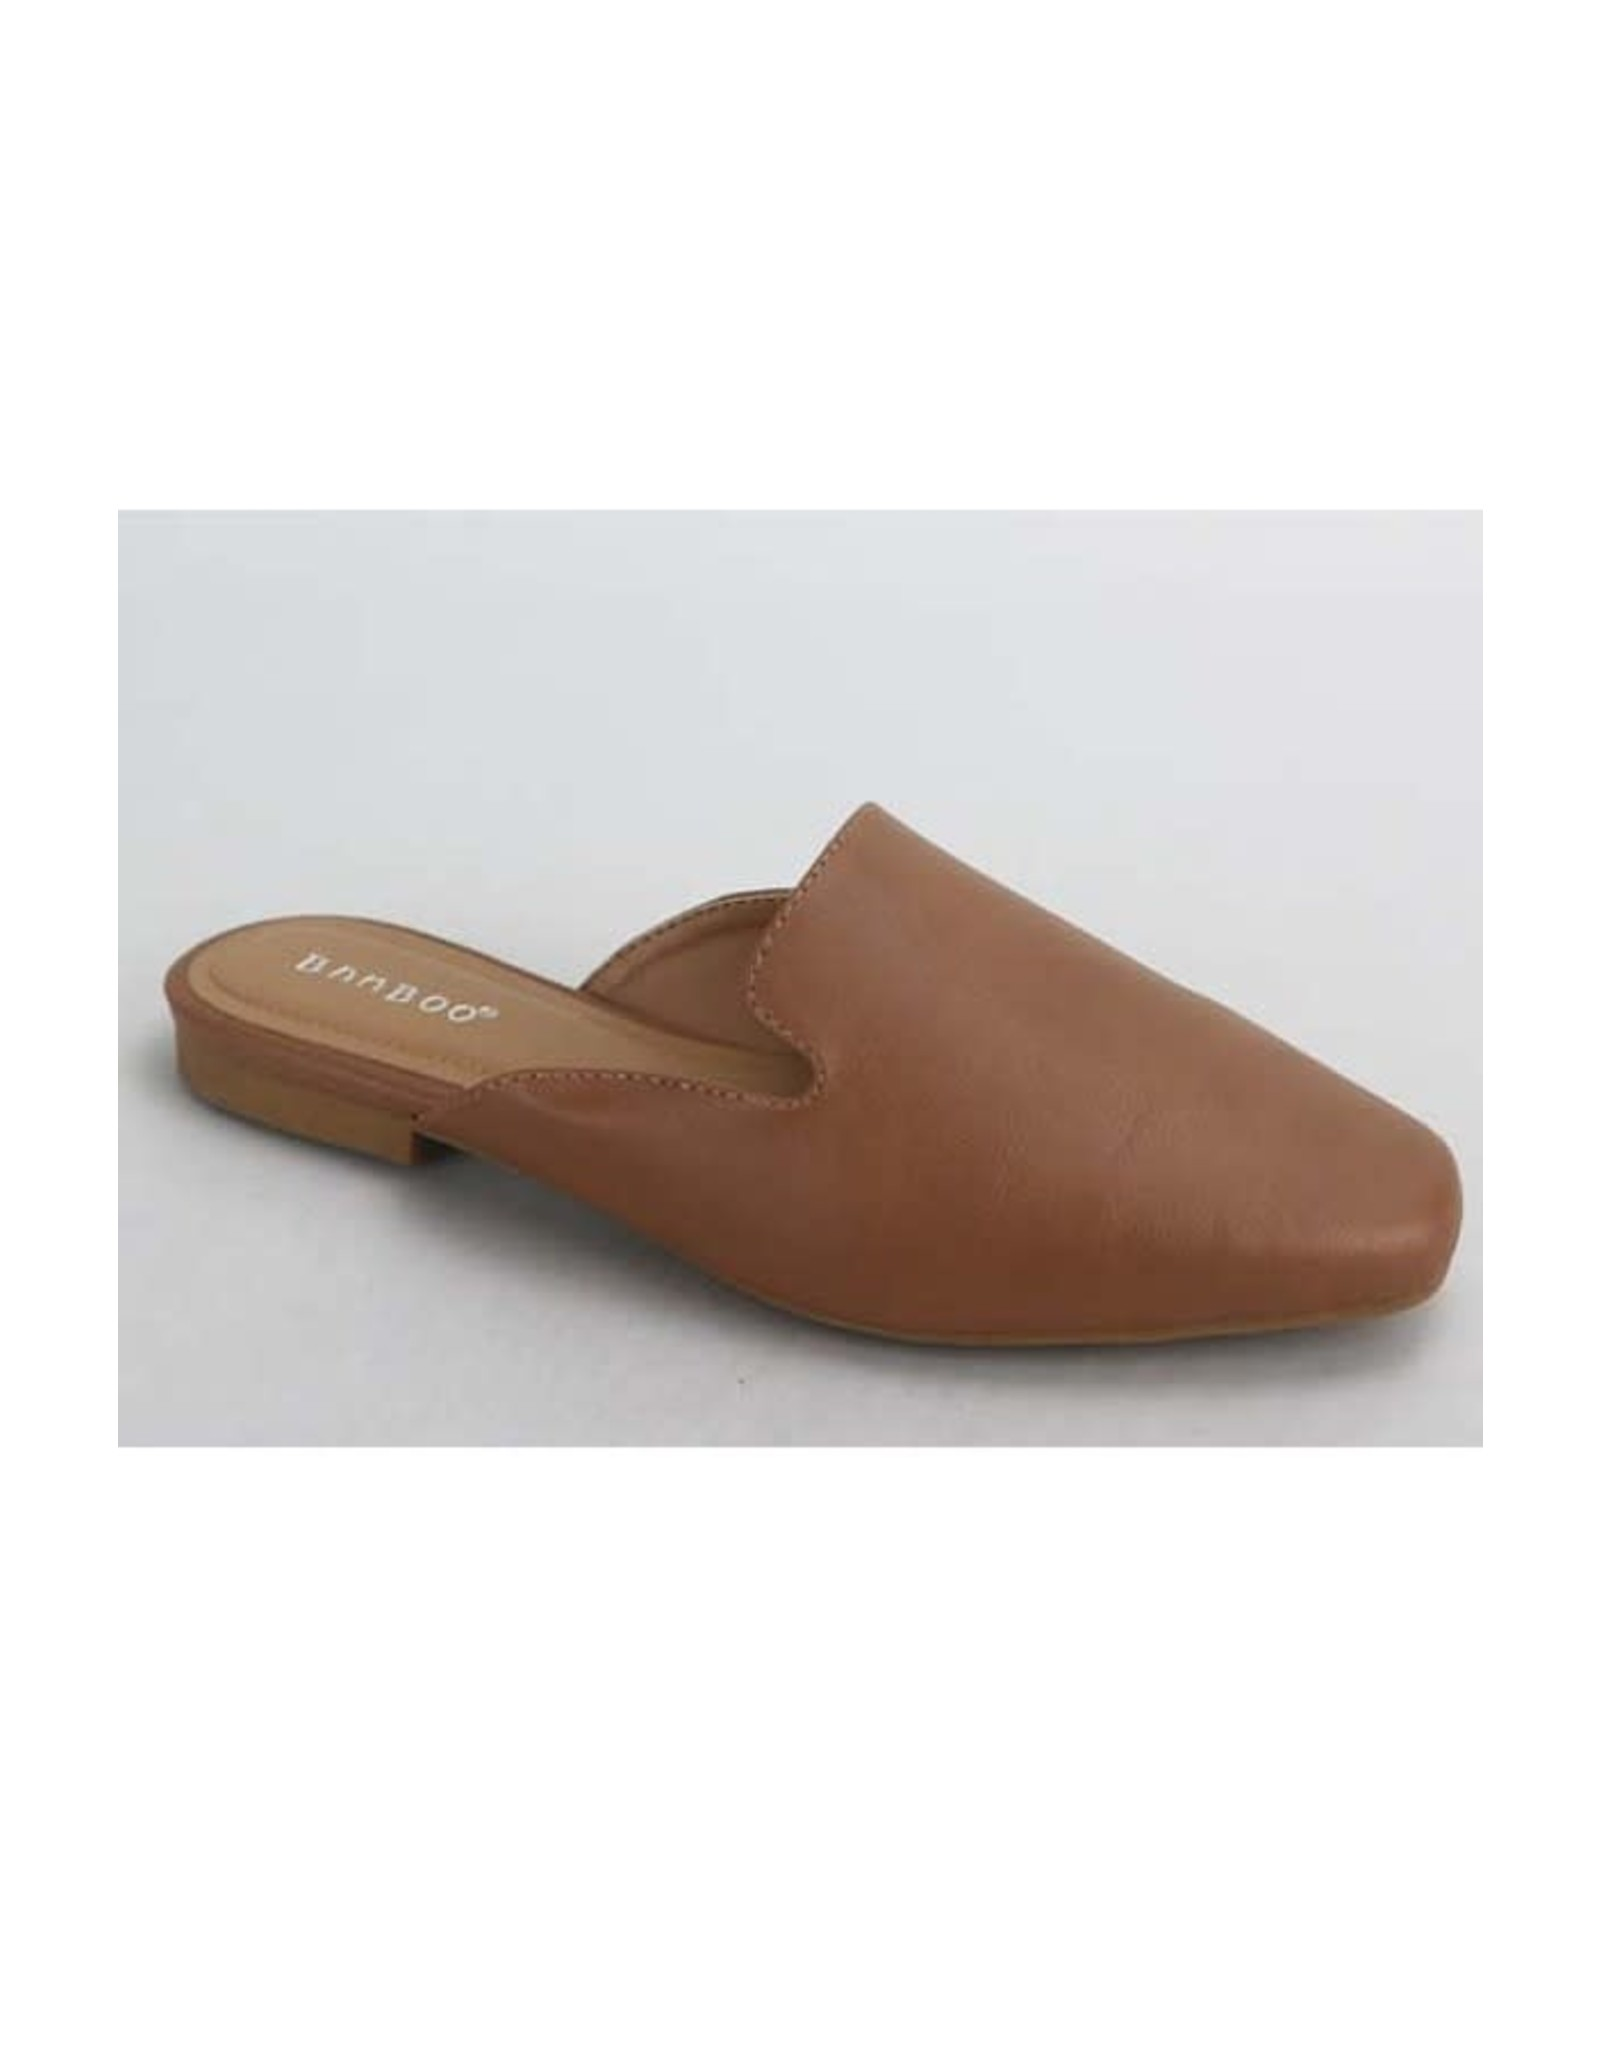 Sweep - Faux leather flat mules (tan)